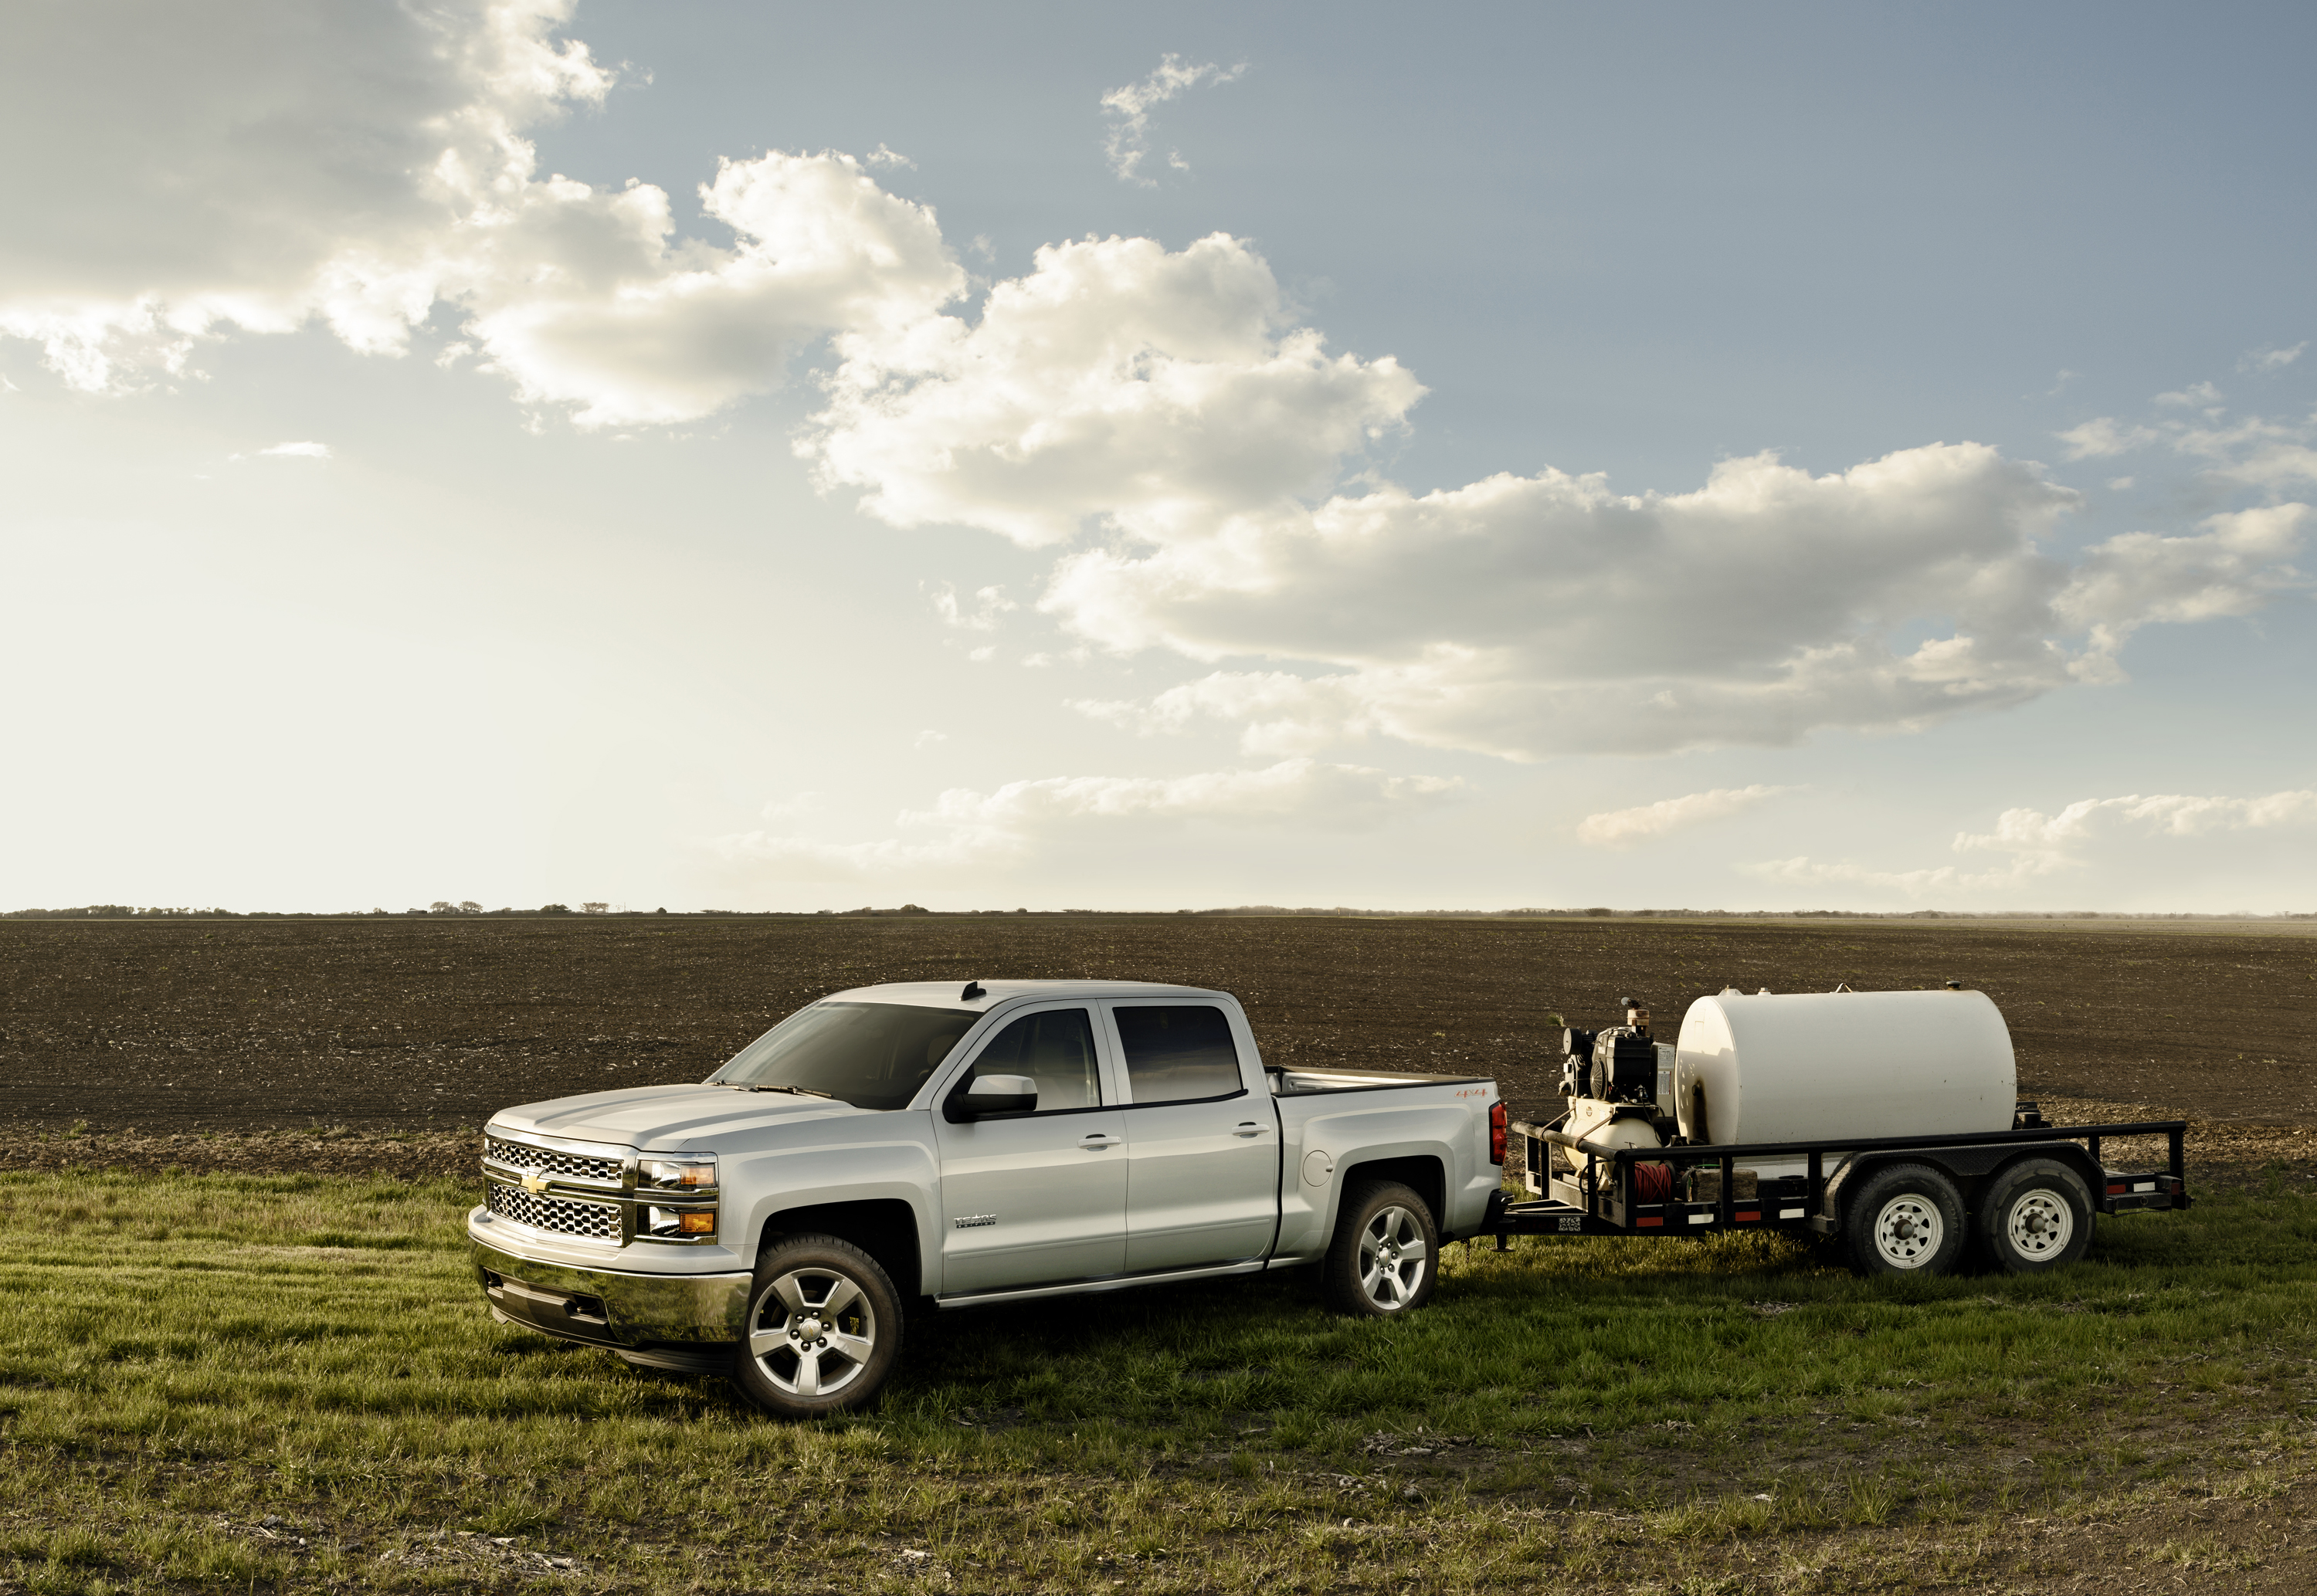 2015 Silverado 1500 Will Tow up to 12,000 Pounds, Based on